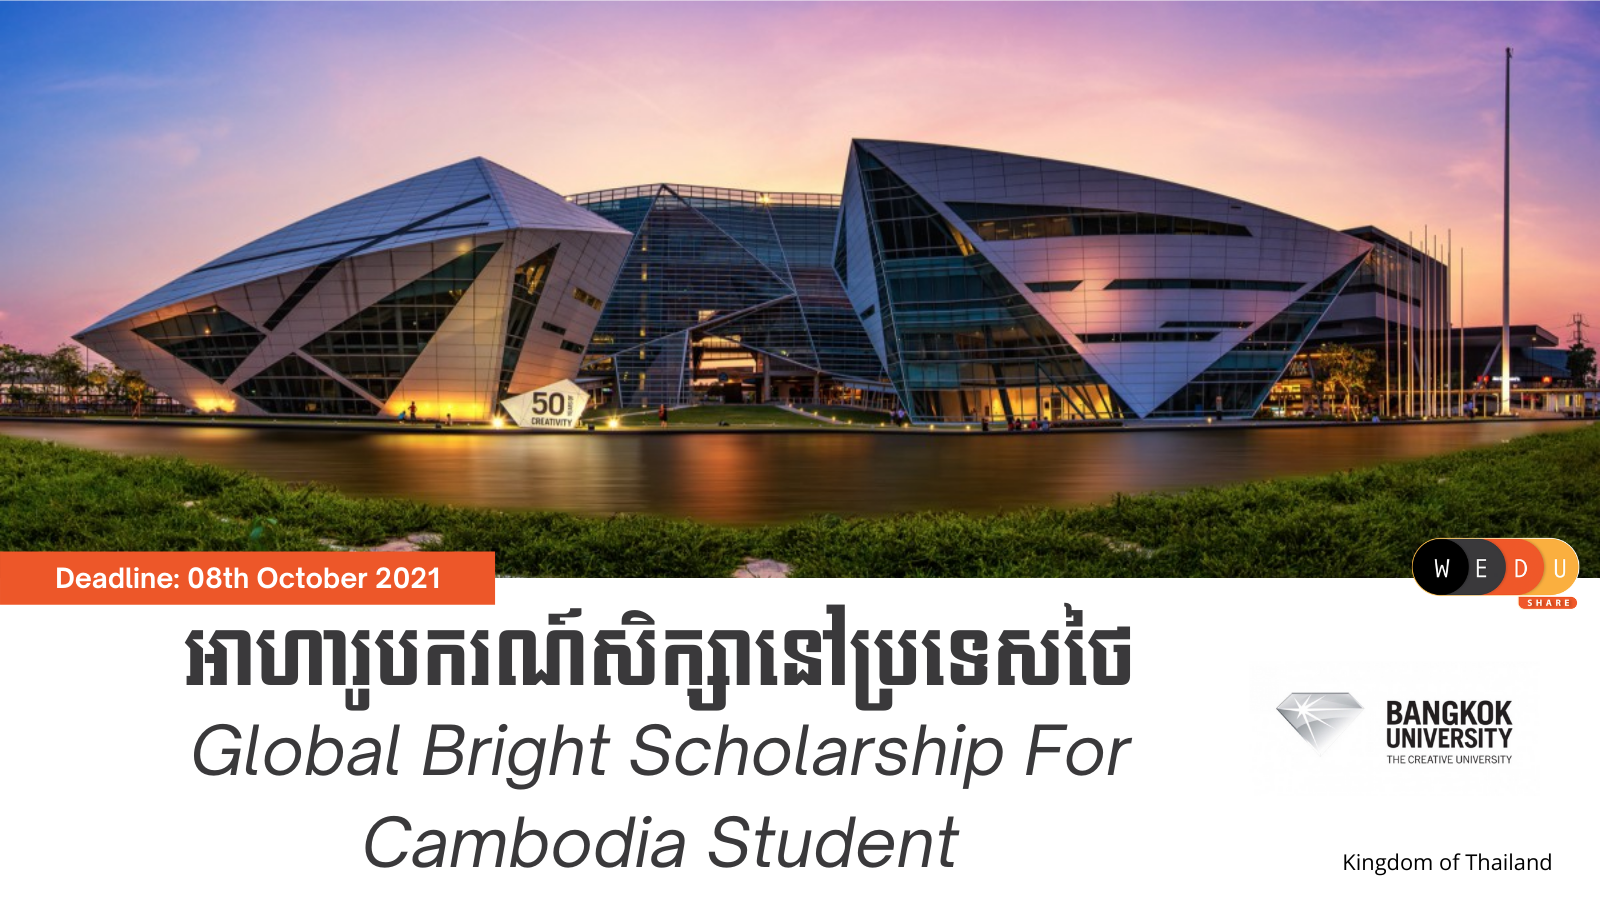 Global Bright Scholarship For Cambodian Student